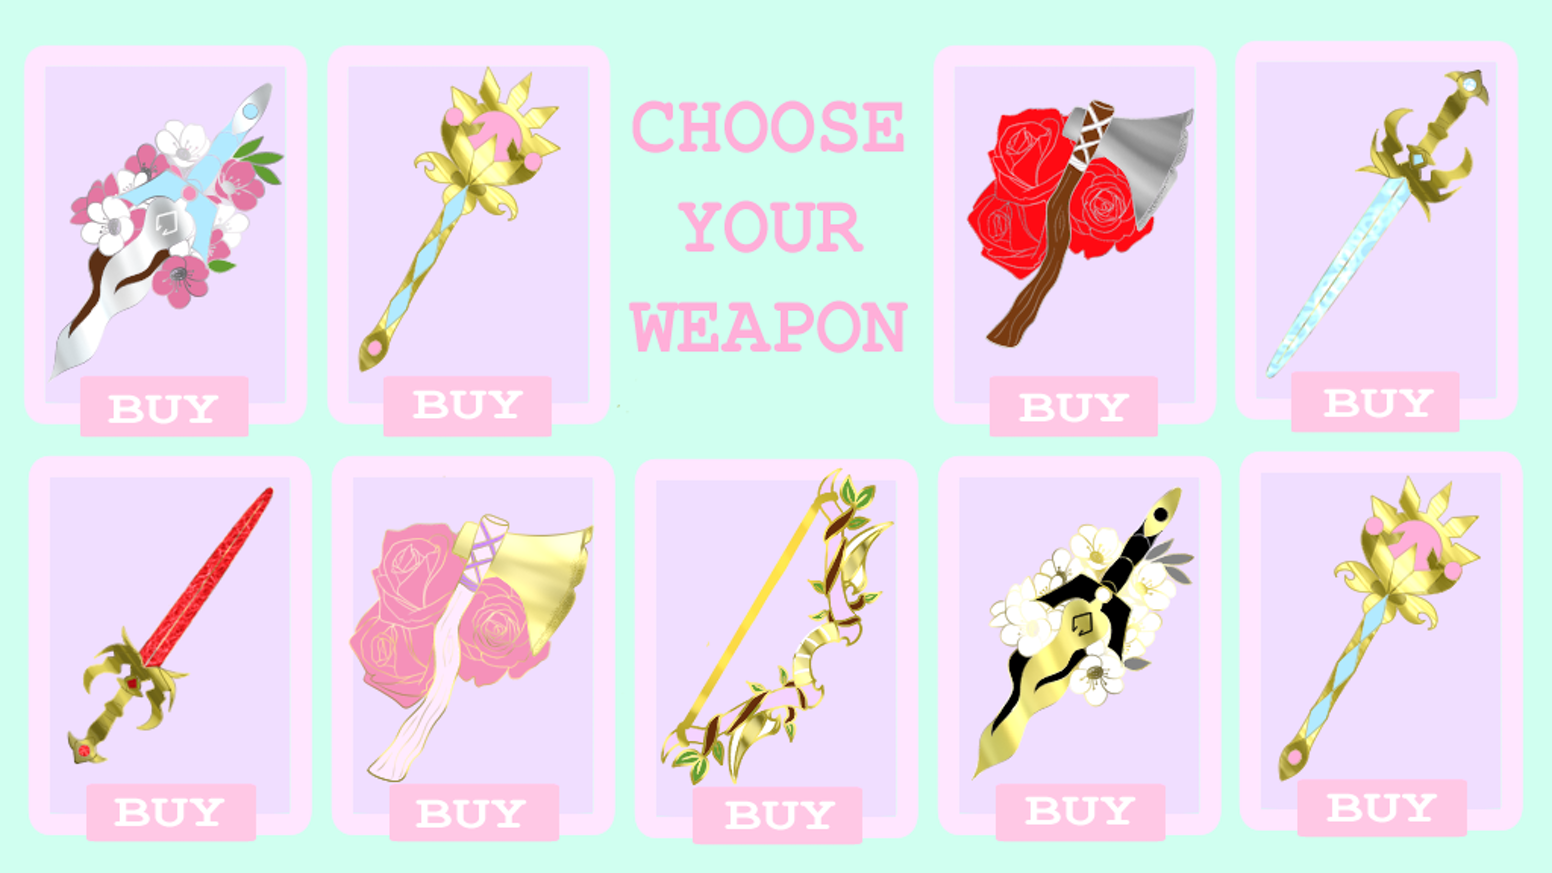 RPG inspired weapon's series of enamel pins from swords to bows to daggers to axes. Both magical and practical weapons included.